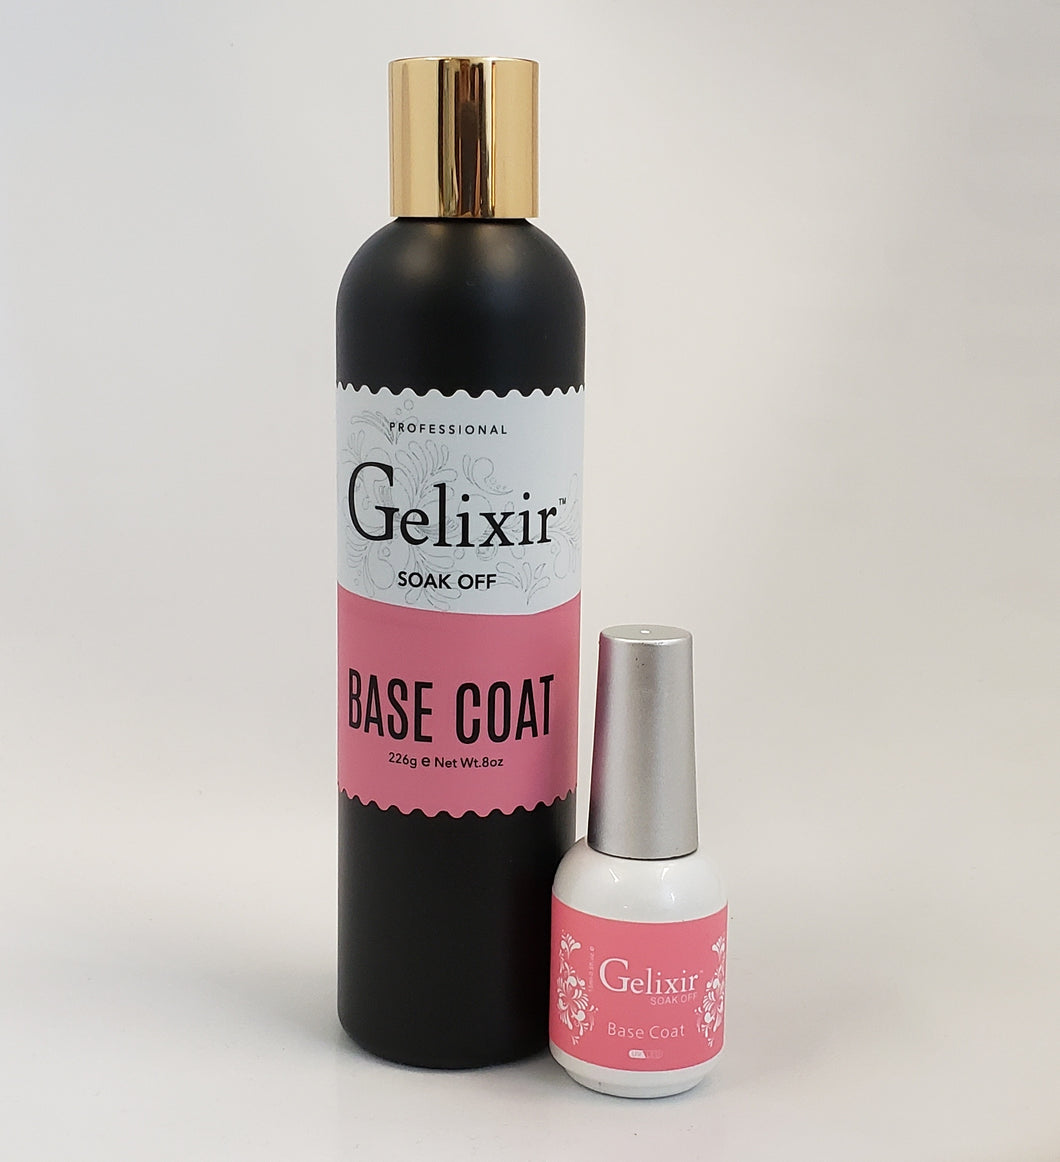 GELIXIR - LED/UV Soak Off Gel - Bundle Base Coat - Refill Size 8oz + 0.5oz